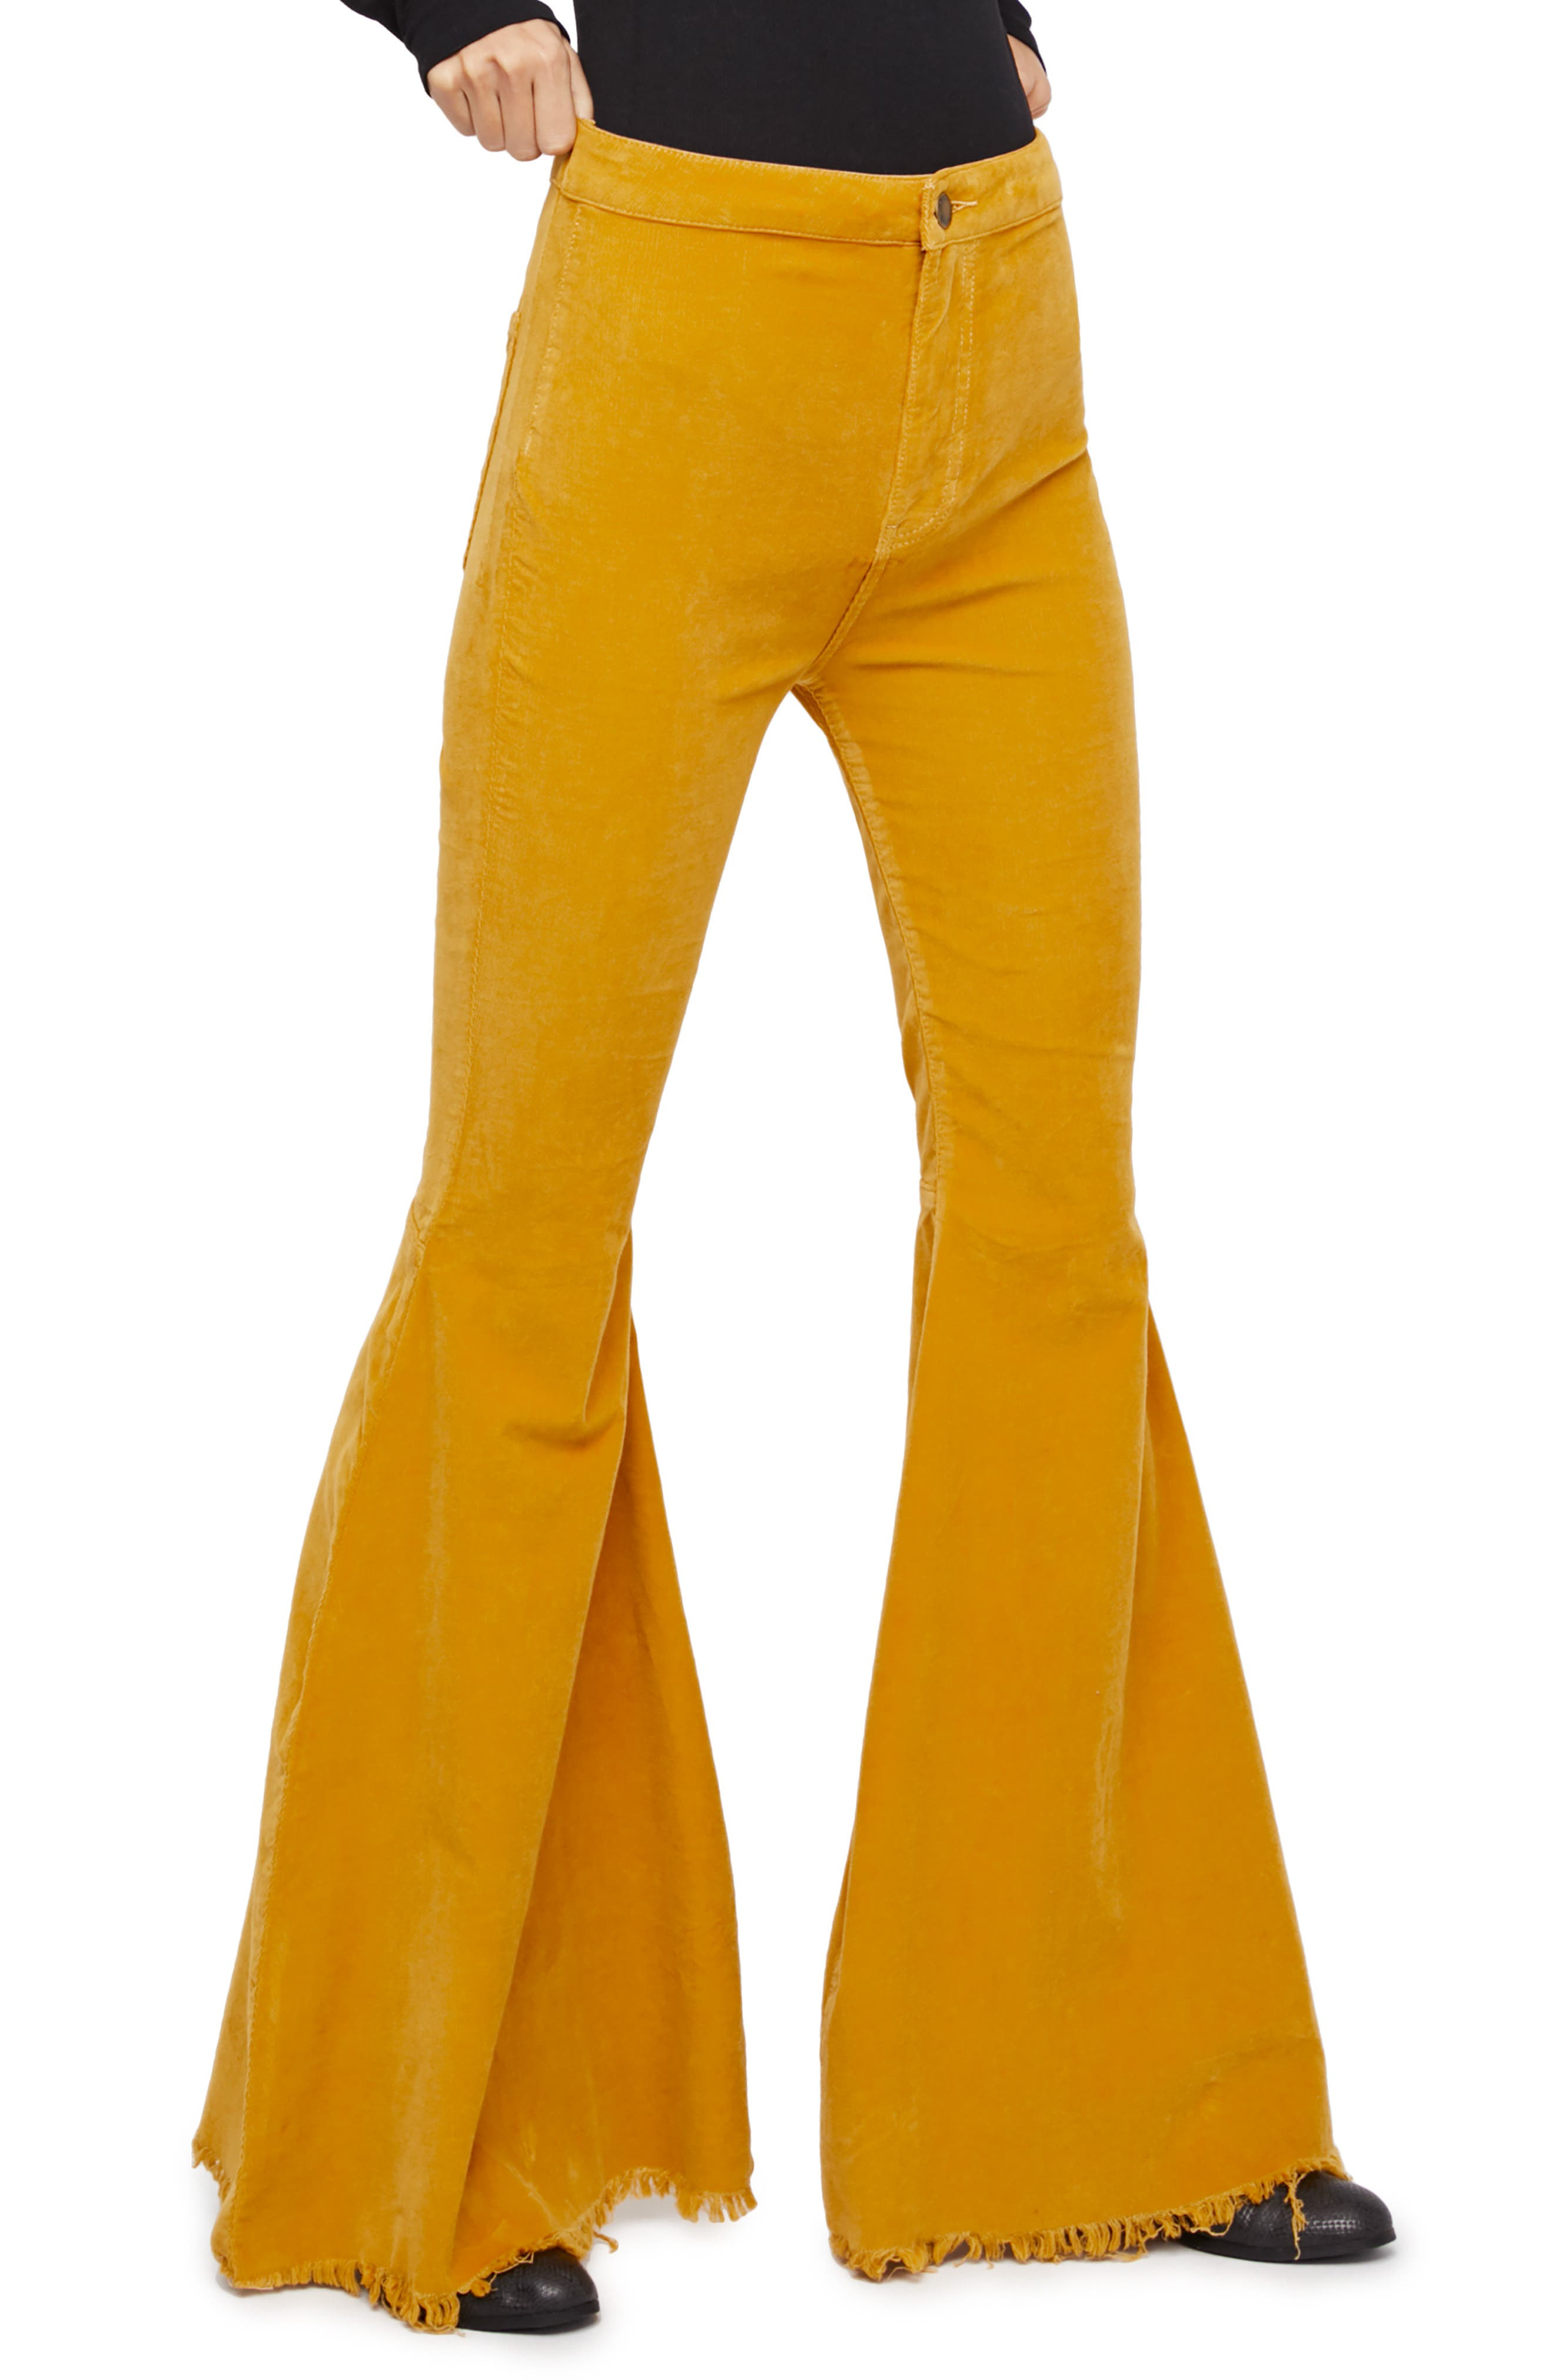 Vintage High Waisted Trousers, Sailor Pants, Jeans Womens Free People Just Float Corduroy Flare Pants Size 25 - Yellow $78.00 AT vintagedancer.com